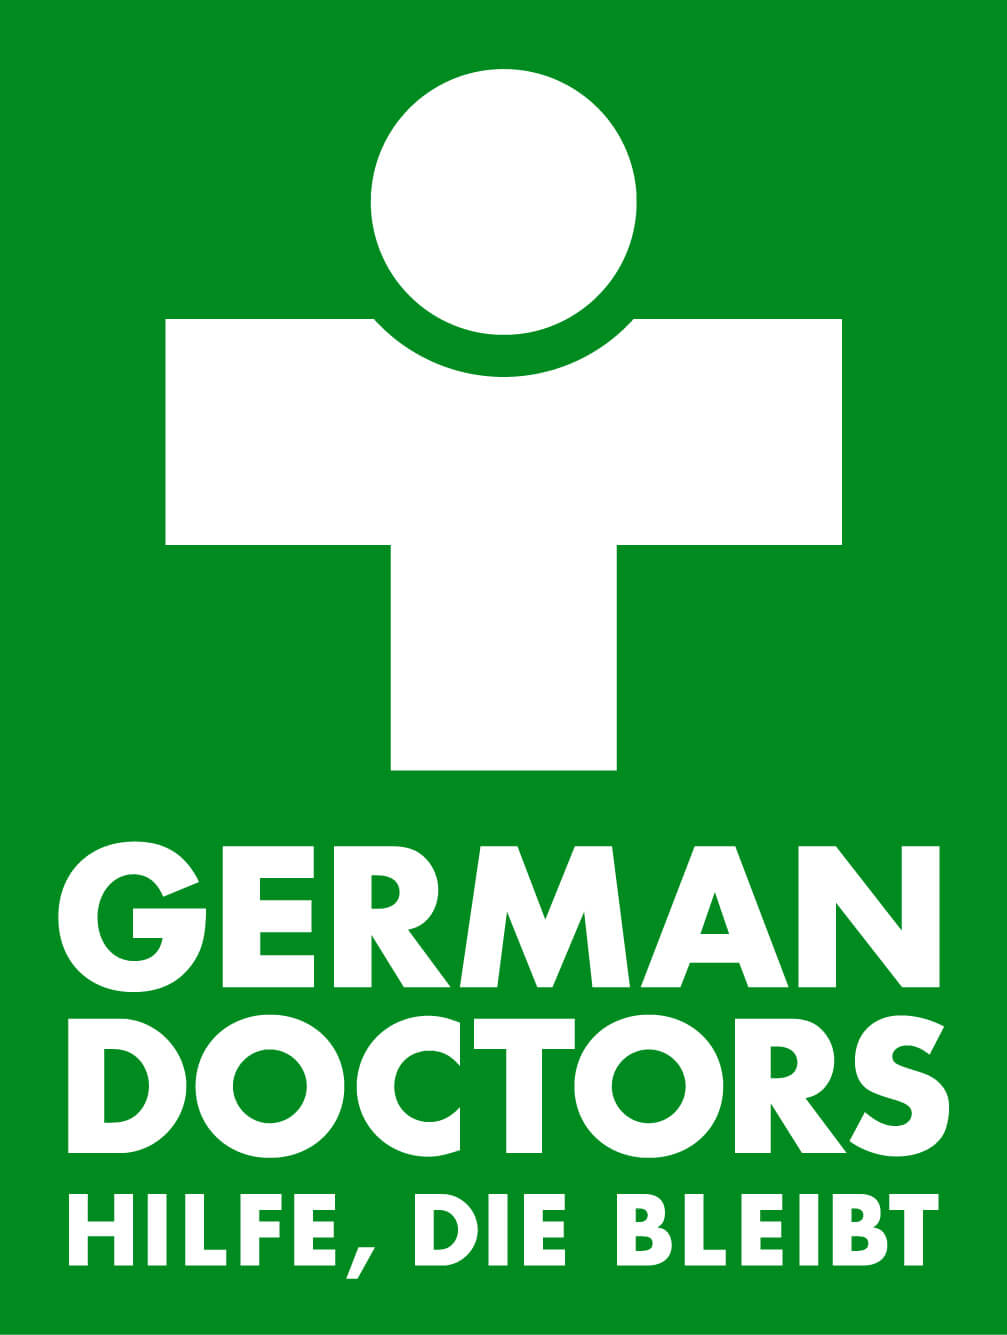 German Doctors - Partner 7summits4help